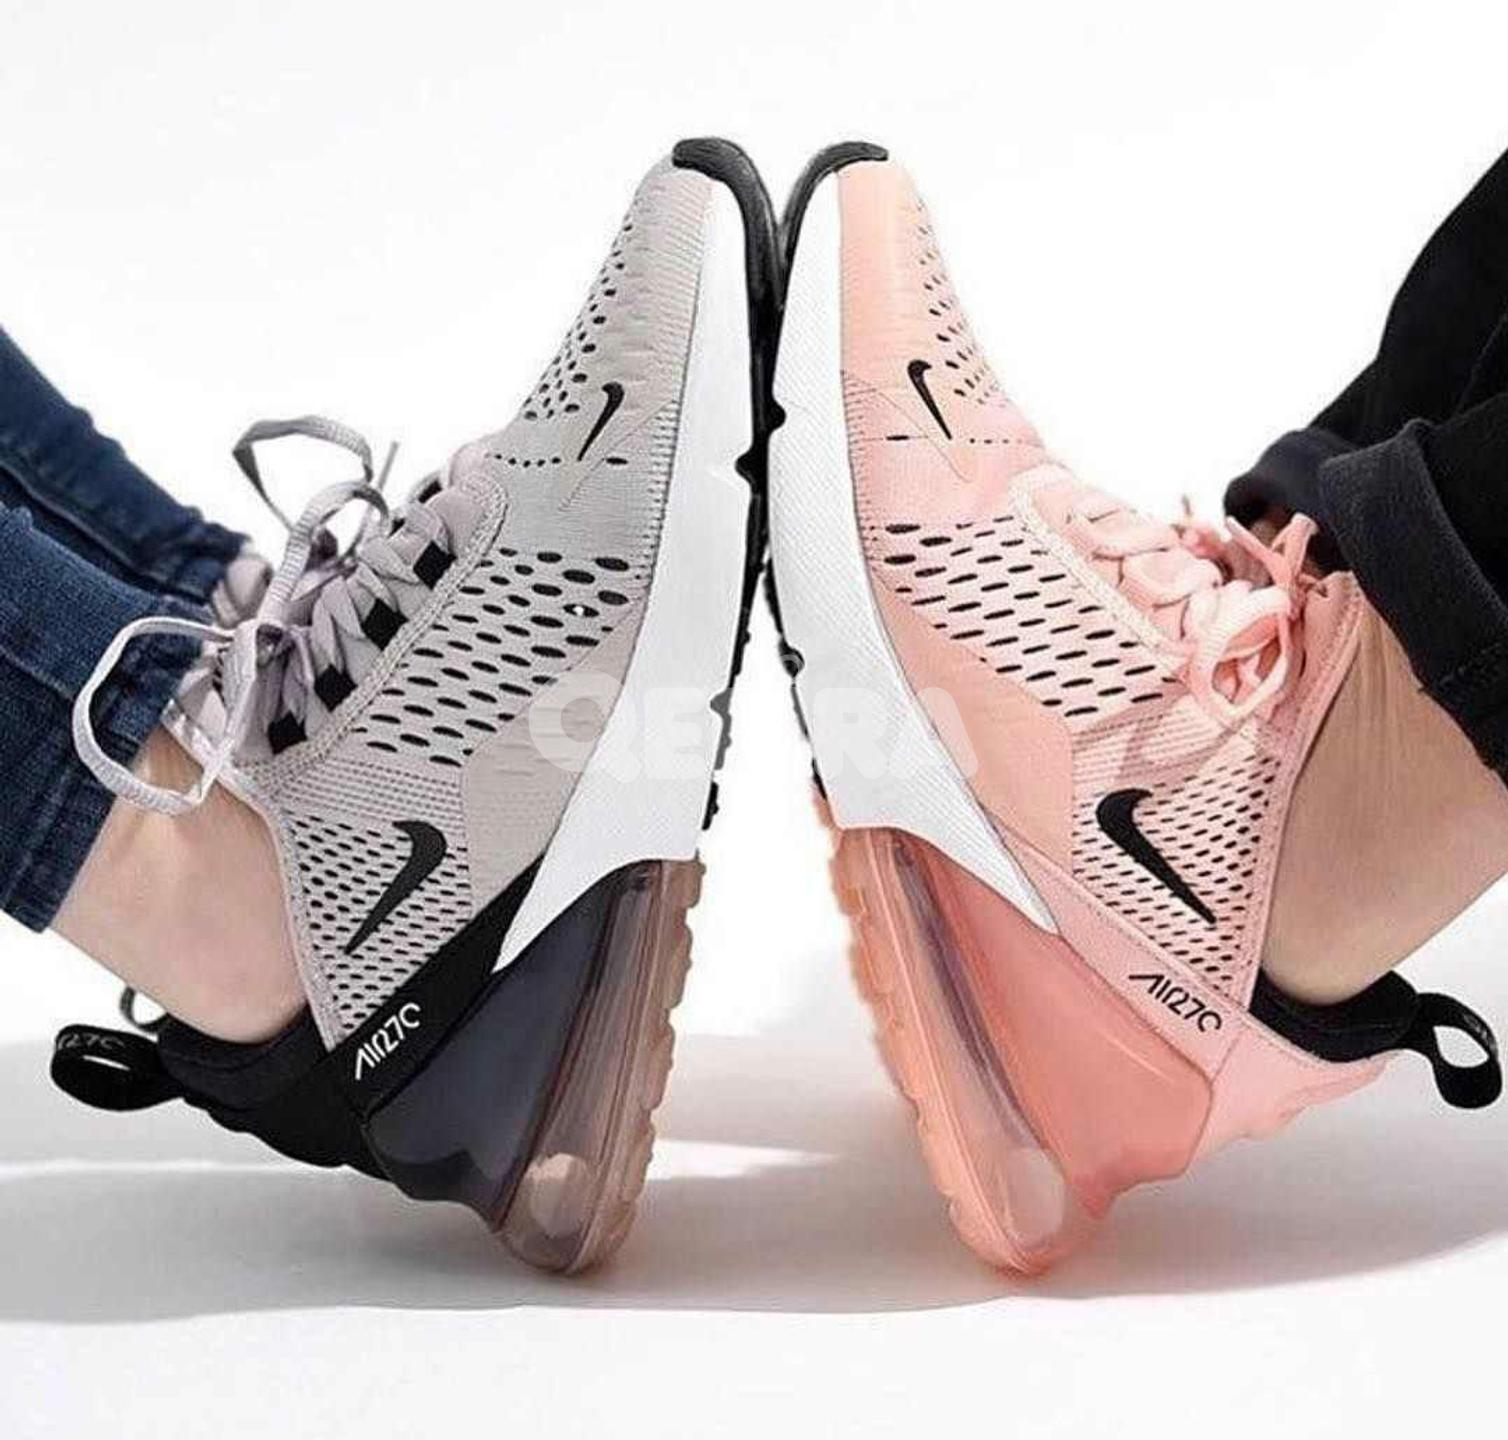 0957f6514f6 NIKE AIR 27C SHOES FOR WOMEN